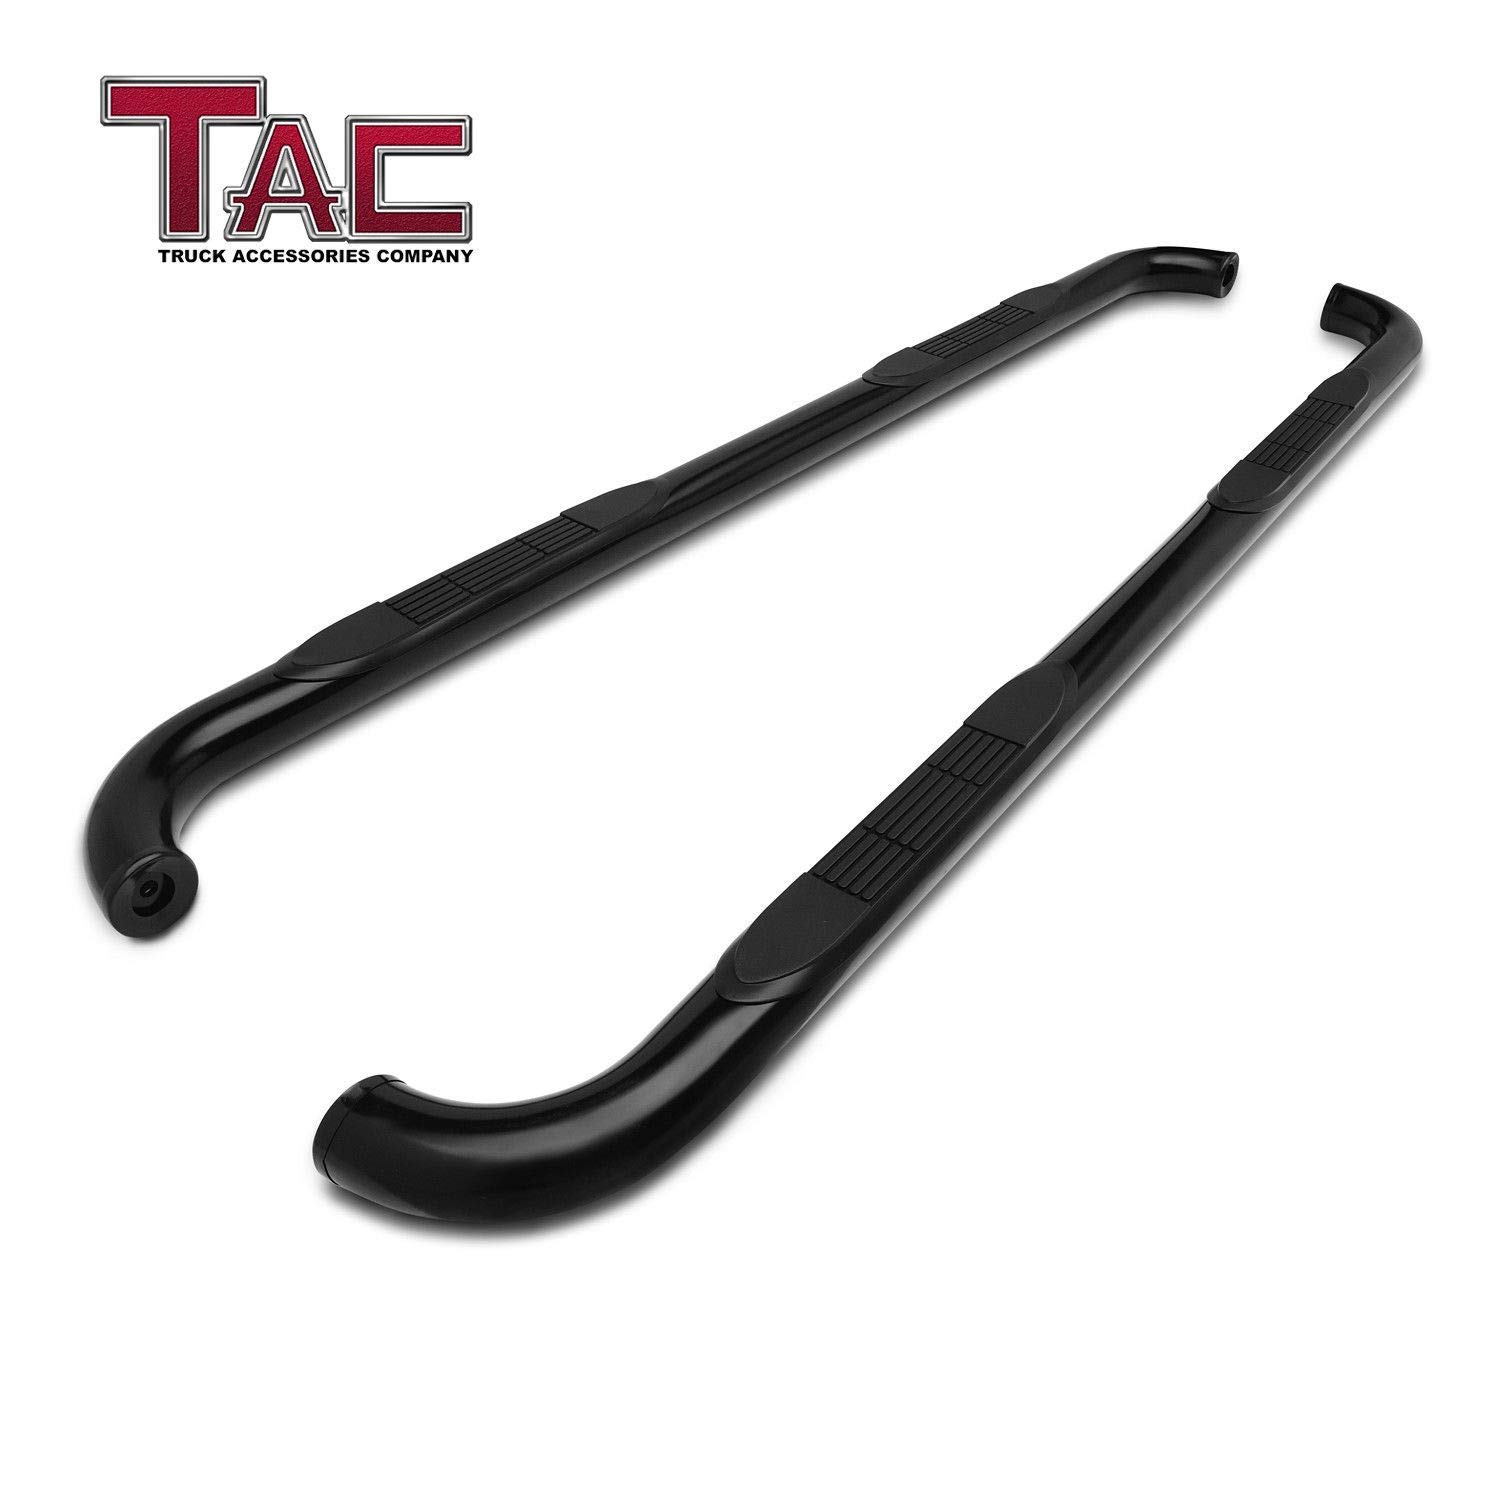 """TAC Side Steps Running Boards Fit 2019 Dodge Ram 1500 Crew Cab (Excl. 2019 Ram 1500 Classic) Truck Pickup 3"""" Black Side Bars Nerf Bars Step Rails Running Boards Off Road Exterior Accessories 2 Pieces"""